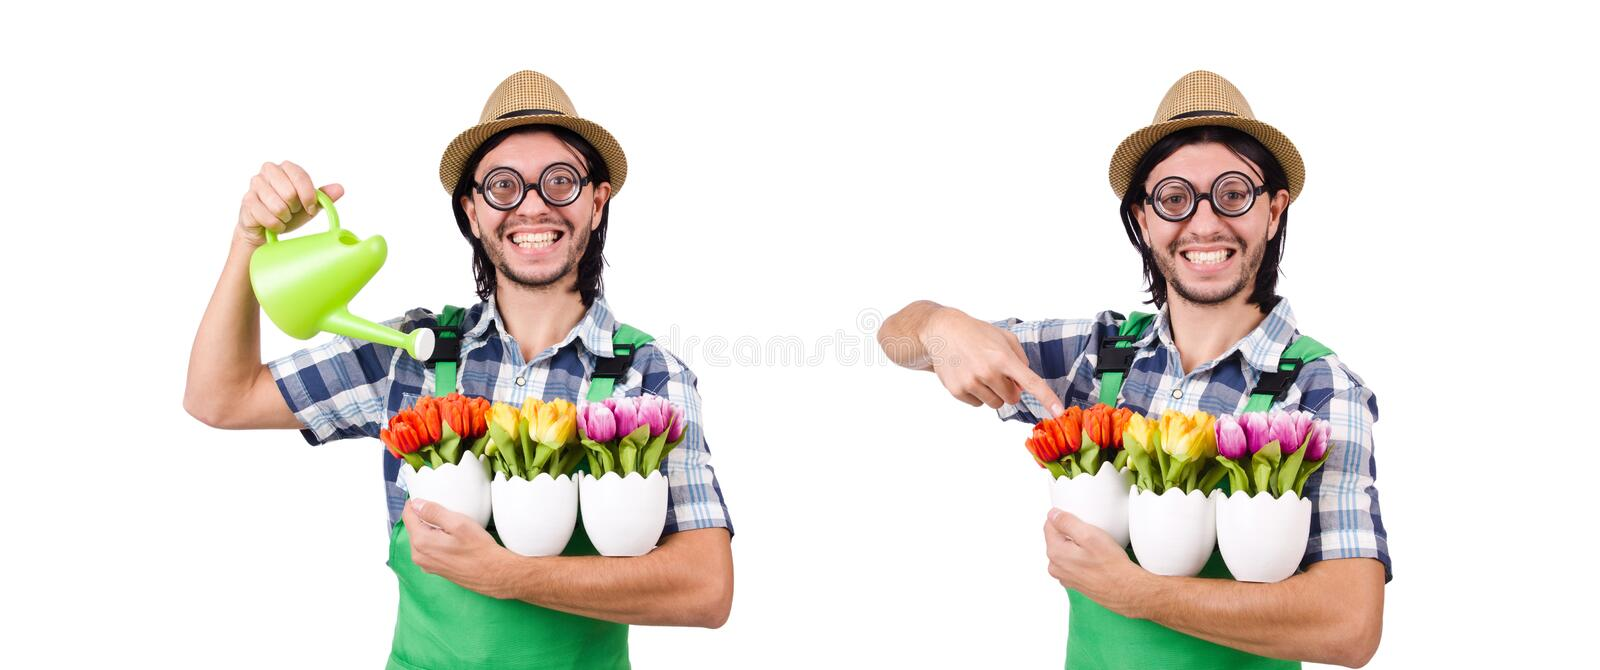 Young funny gardener with tulips and watering can isolated oin w royalty free stock photography